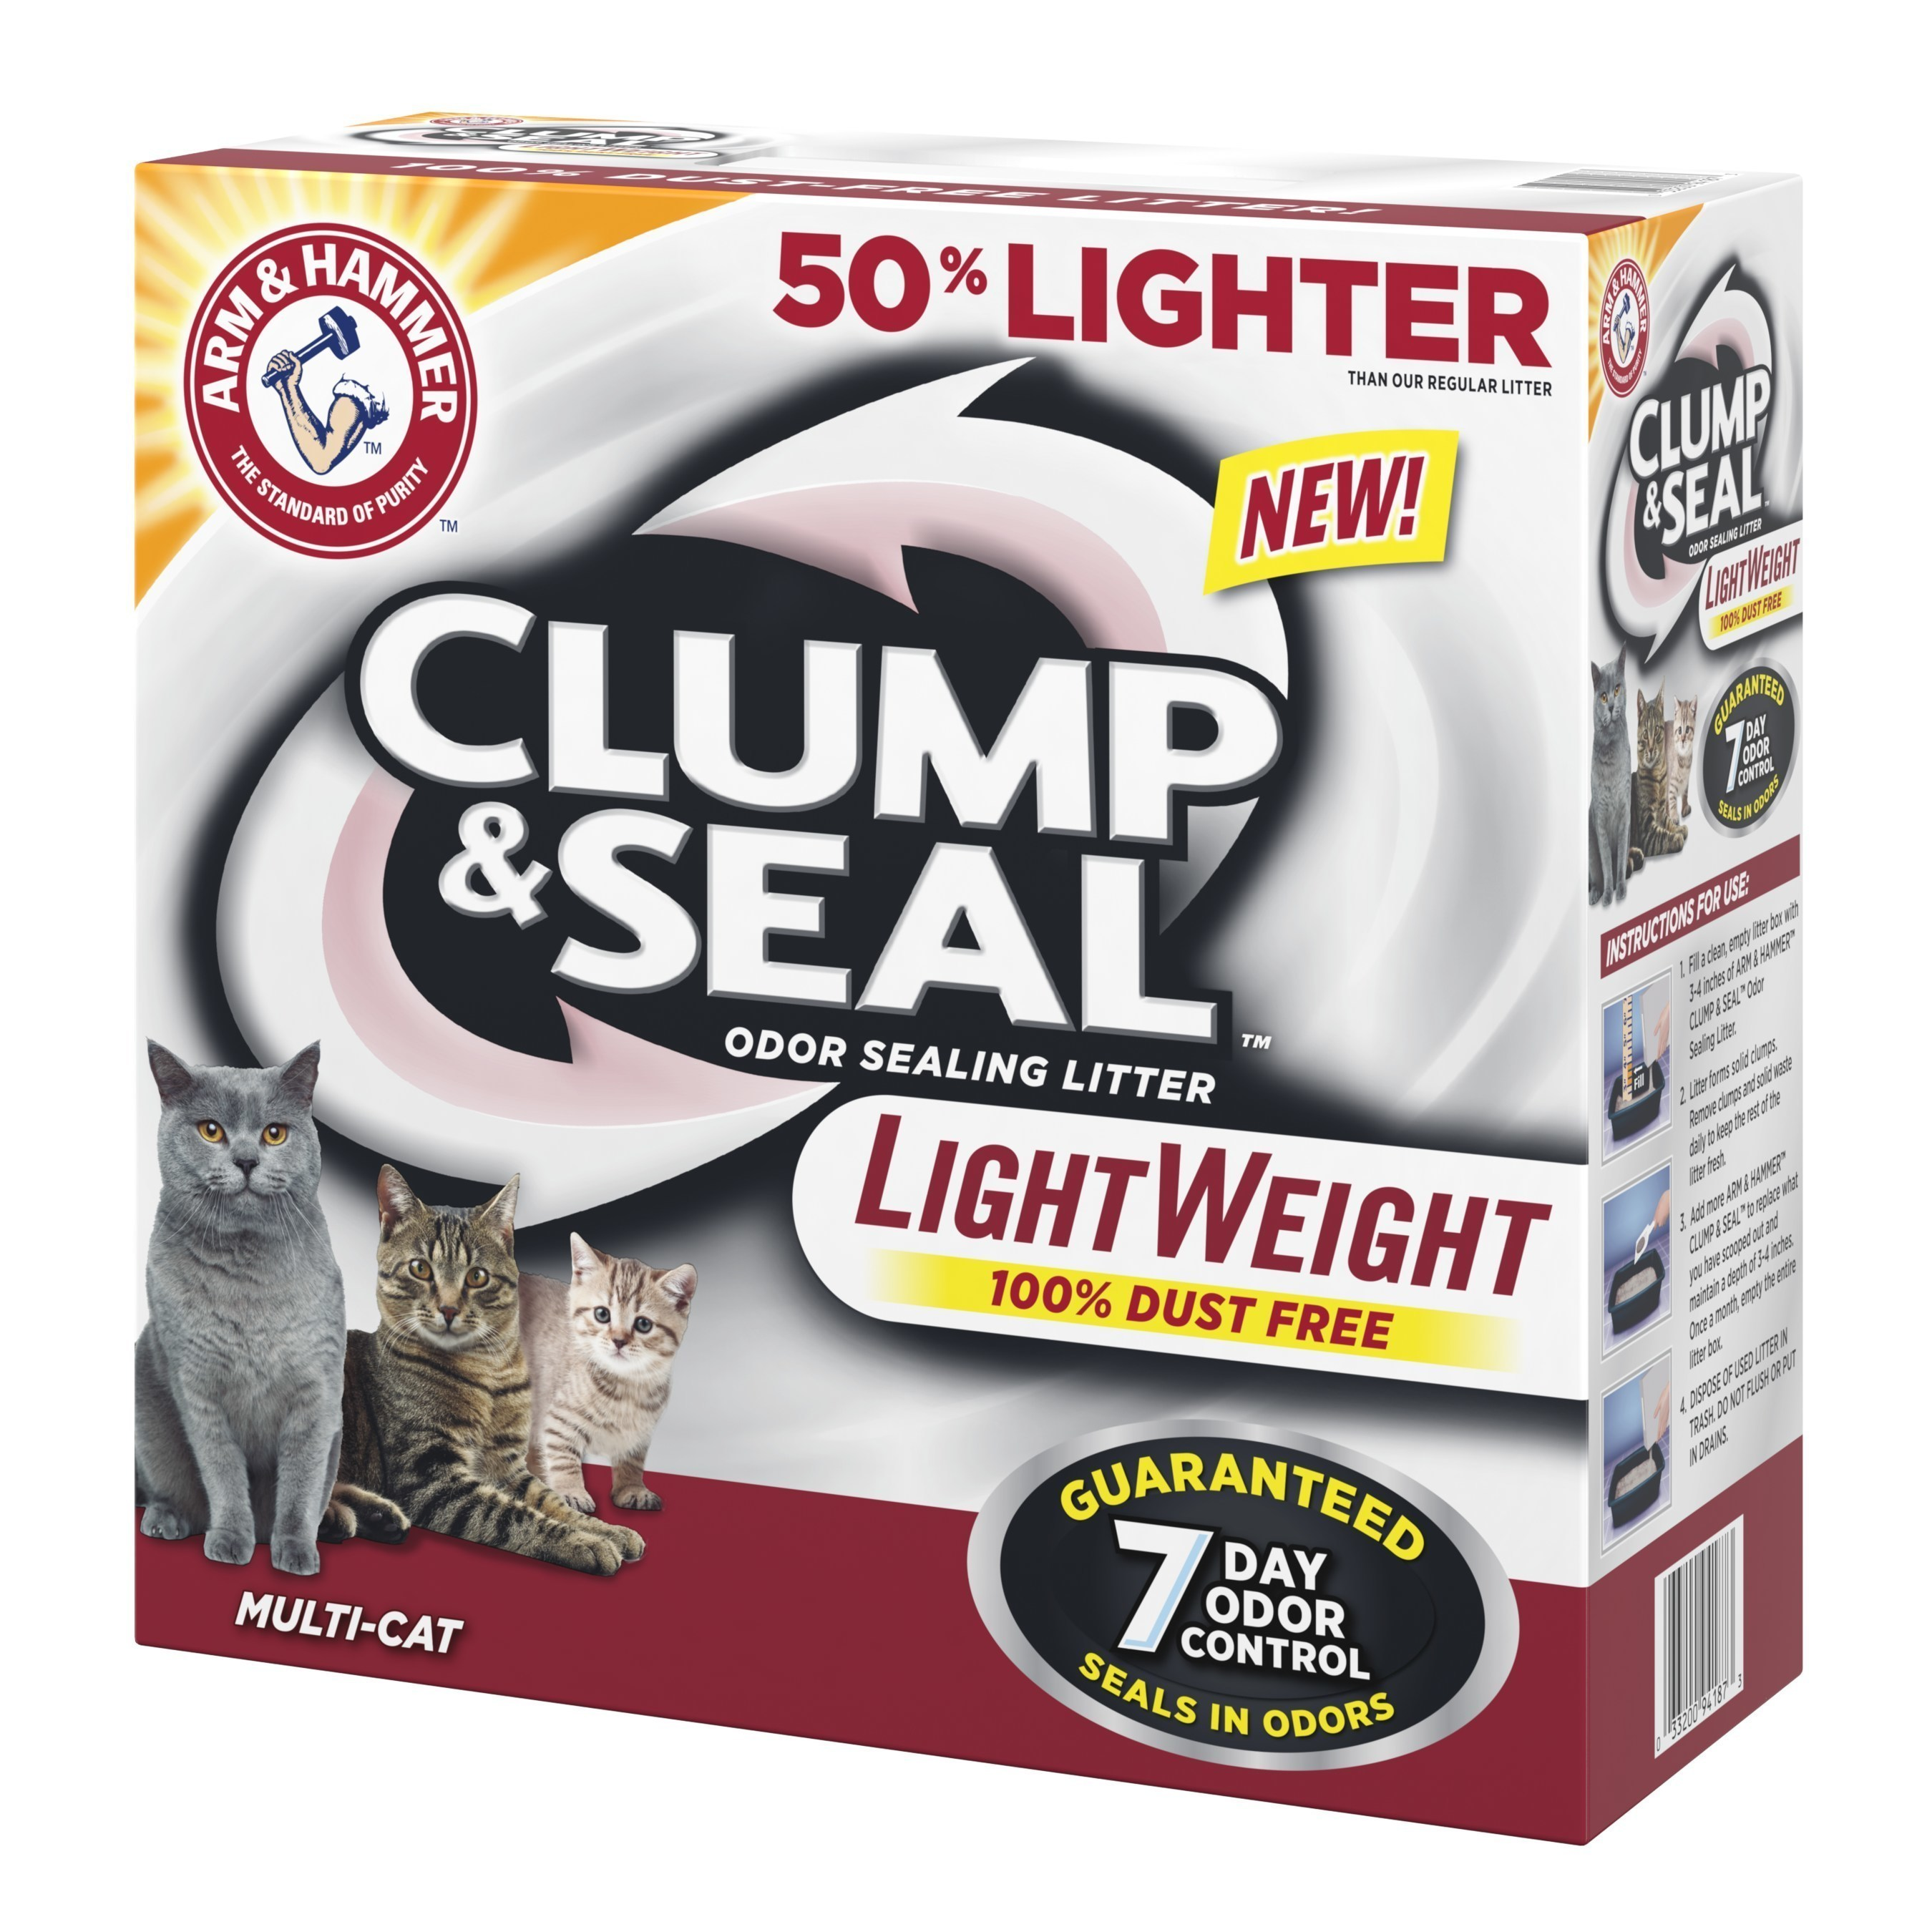 """ARM & HAMMER(TM) launches Clump & Seal(TM) Lightweight Cat Litter aimed to """"Lighten the Day"""" for cat owners"""